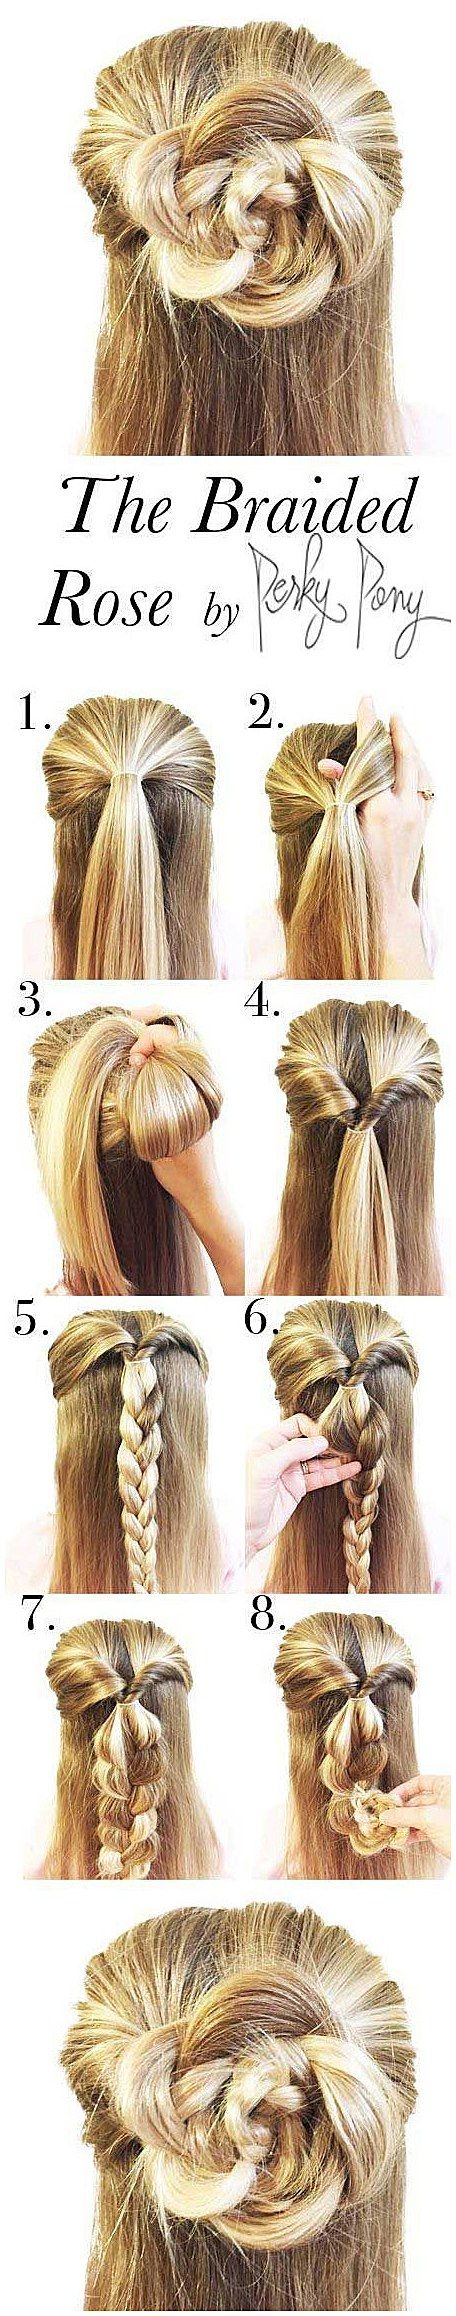 Easy half up half down hairstyles the braided rose